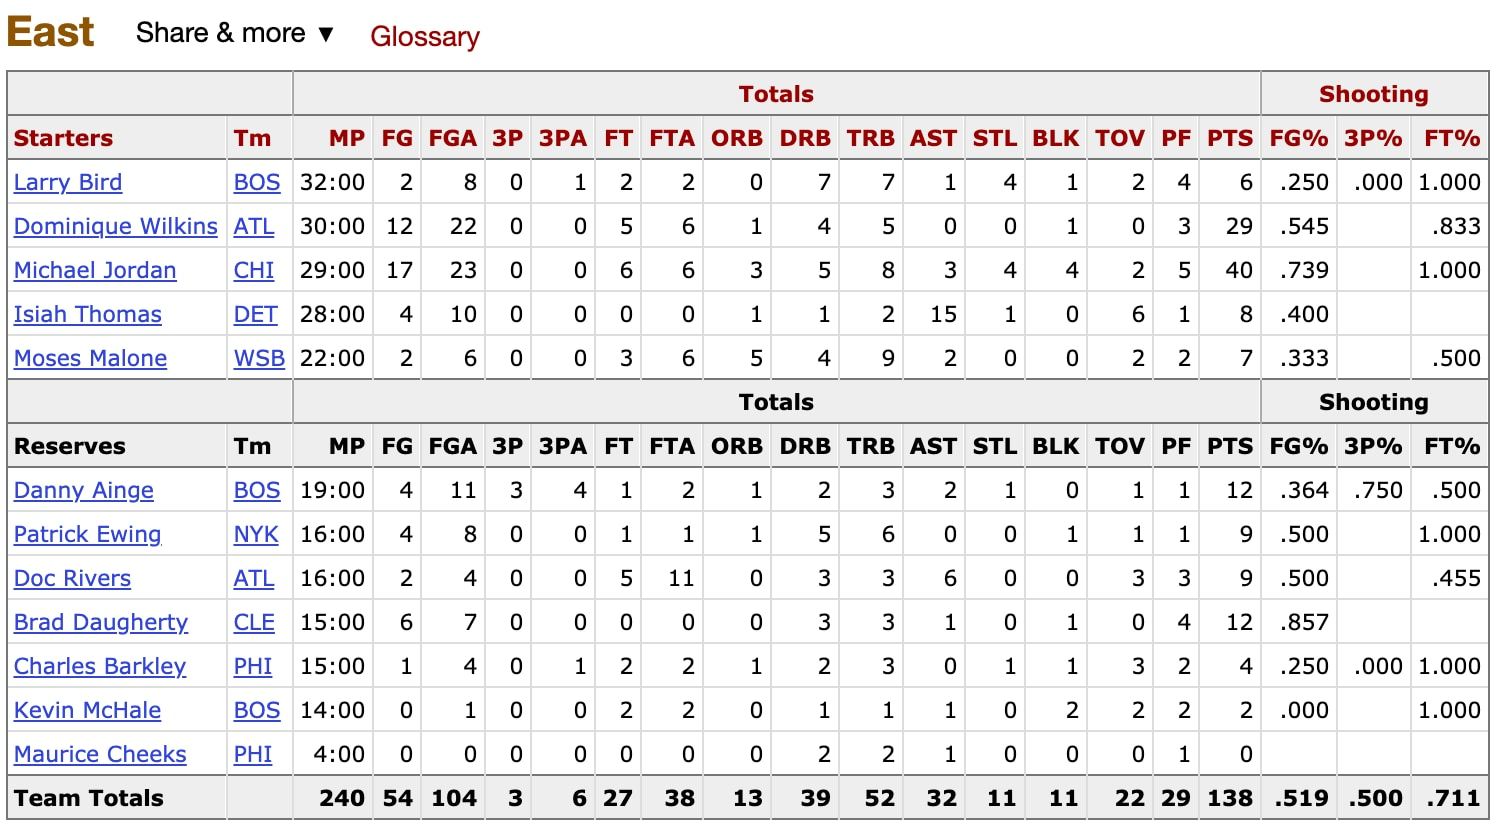 Box Score for the East All-Stars